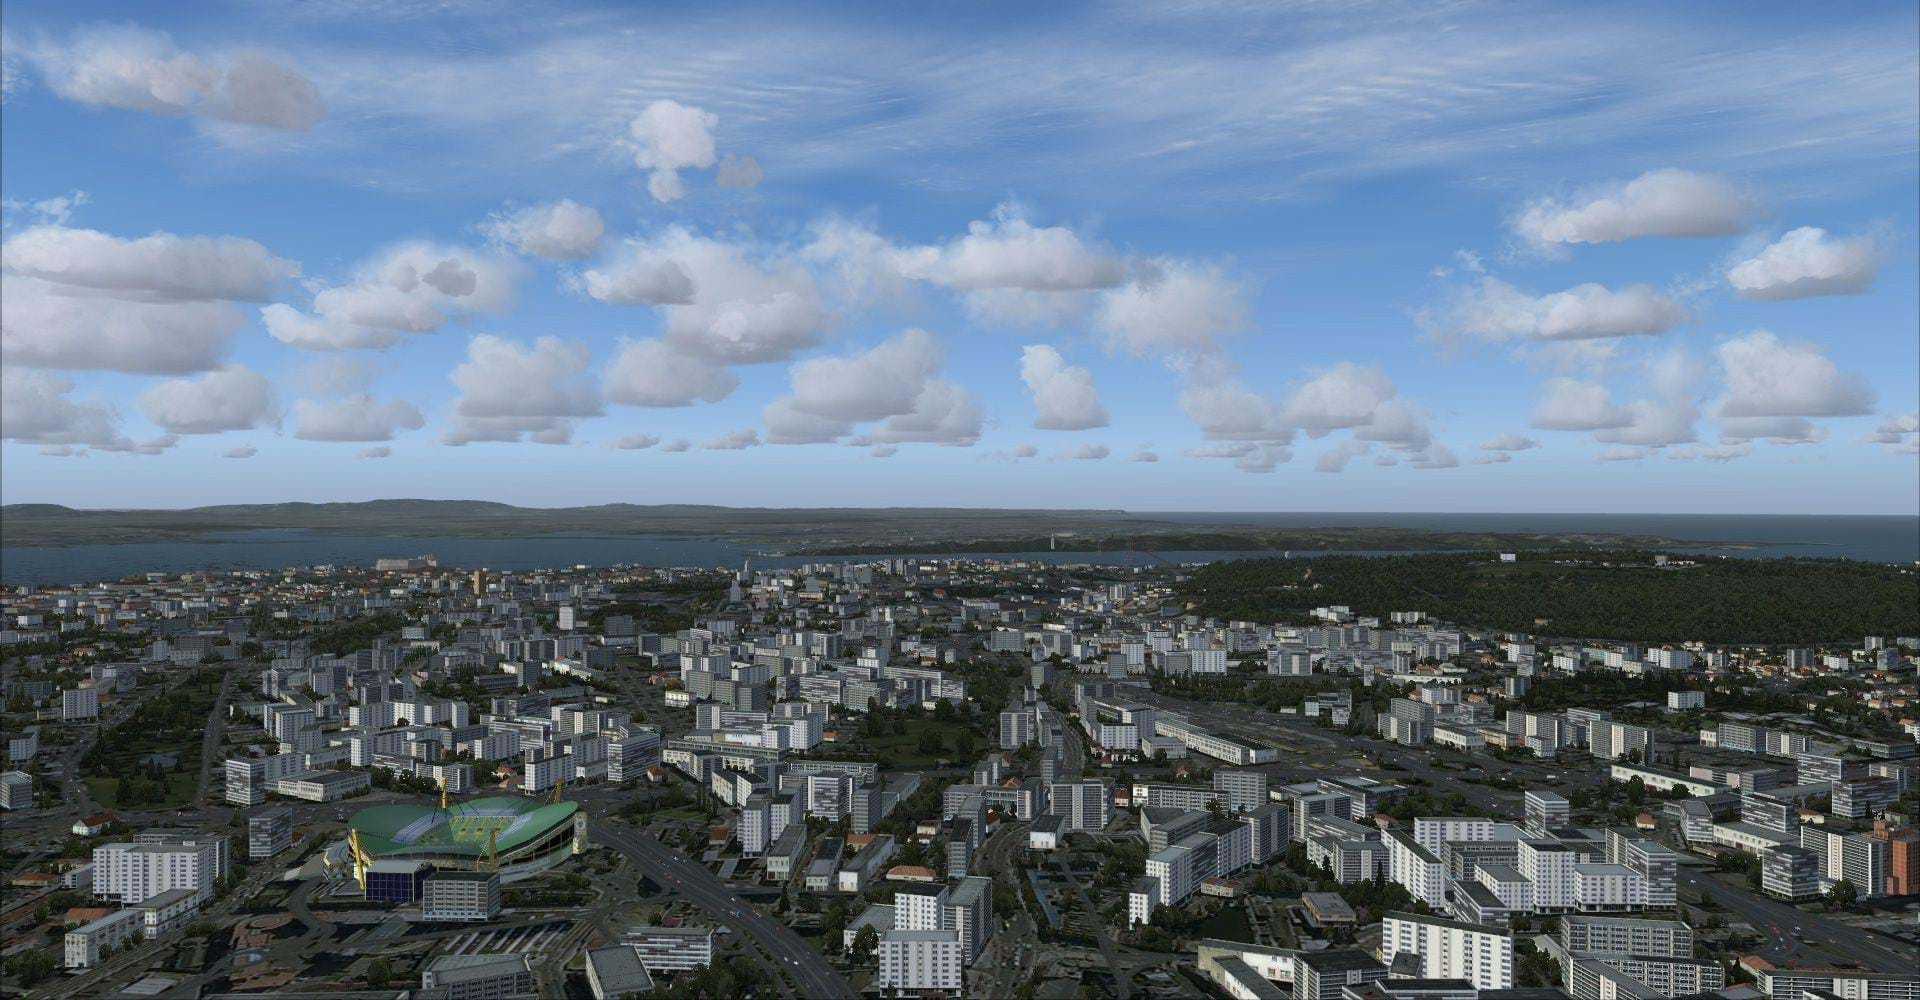 Orbx ftx | ORBX Airport Elevation issues - 2019-04-26